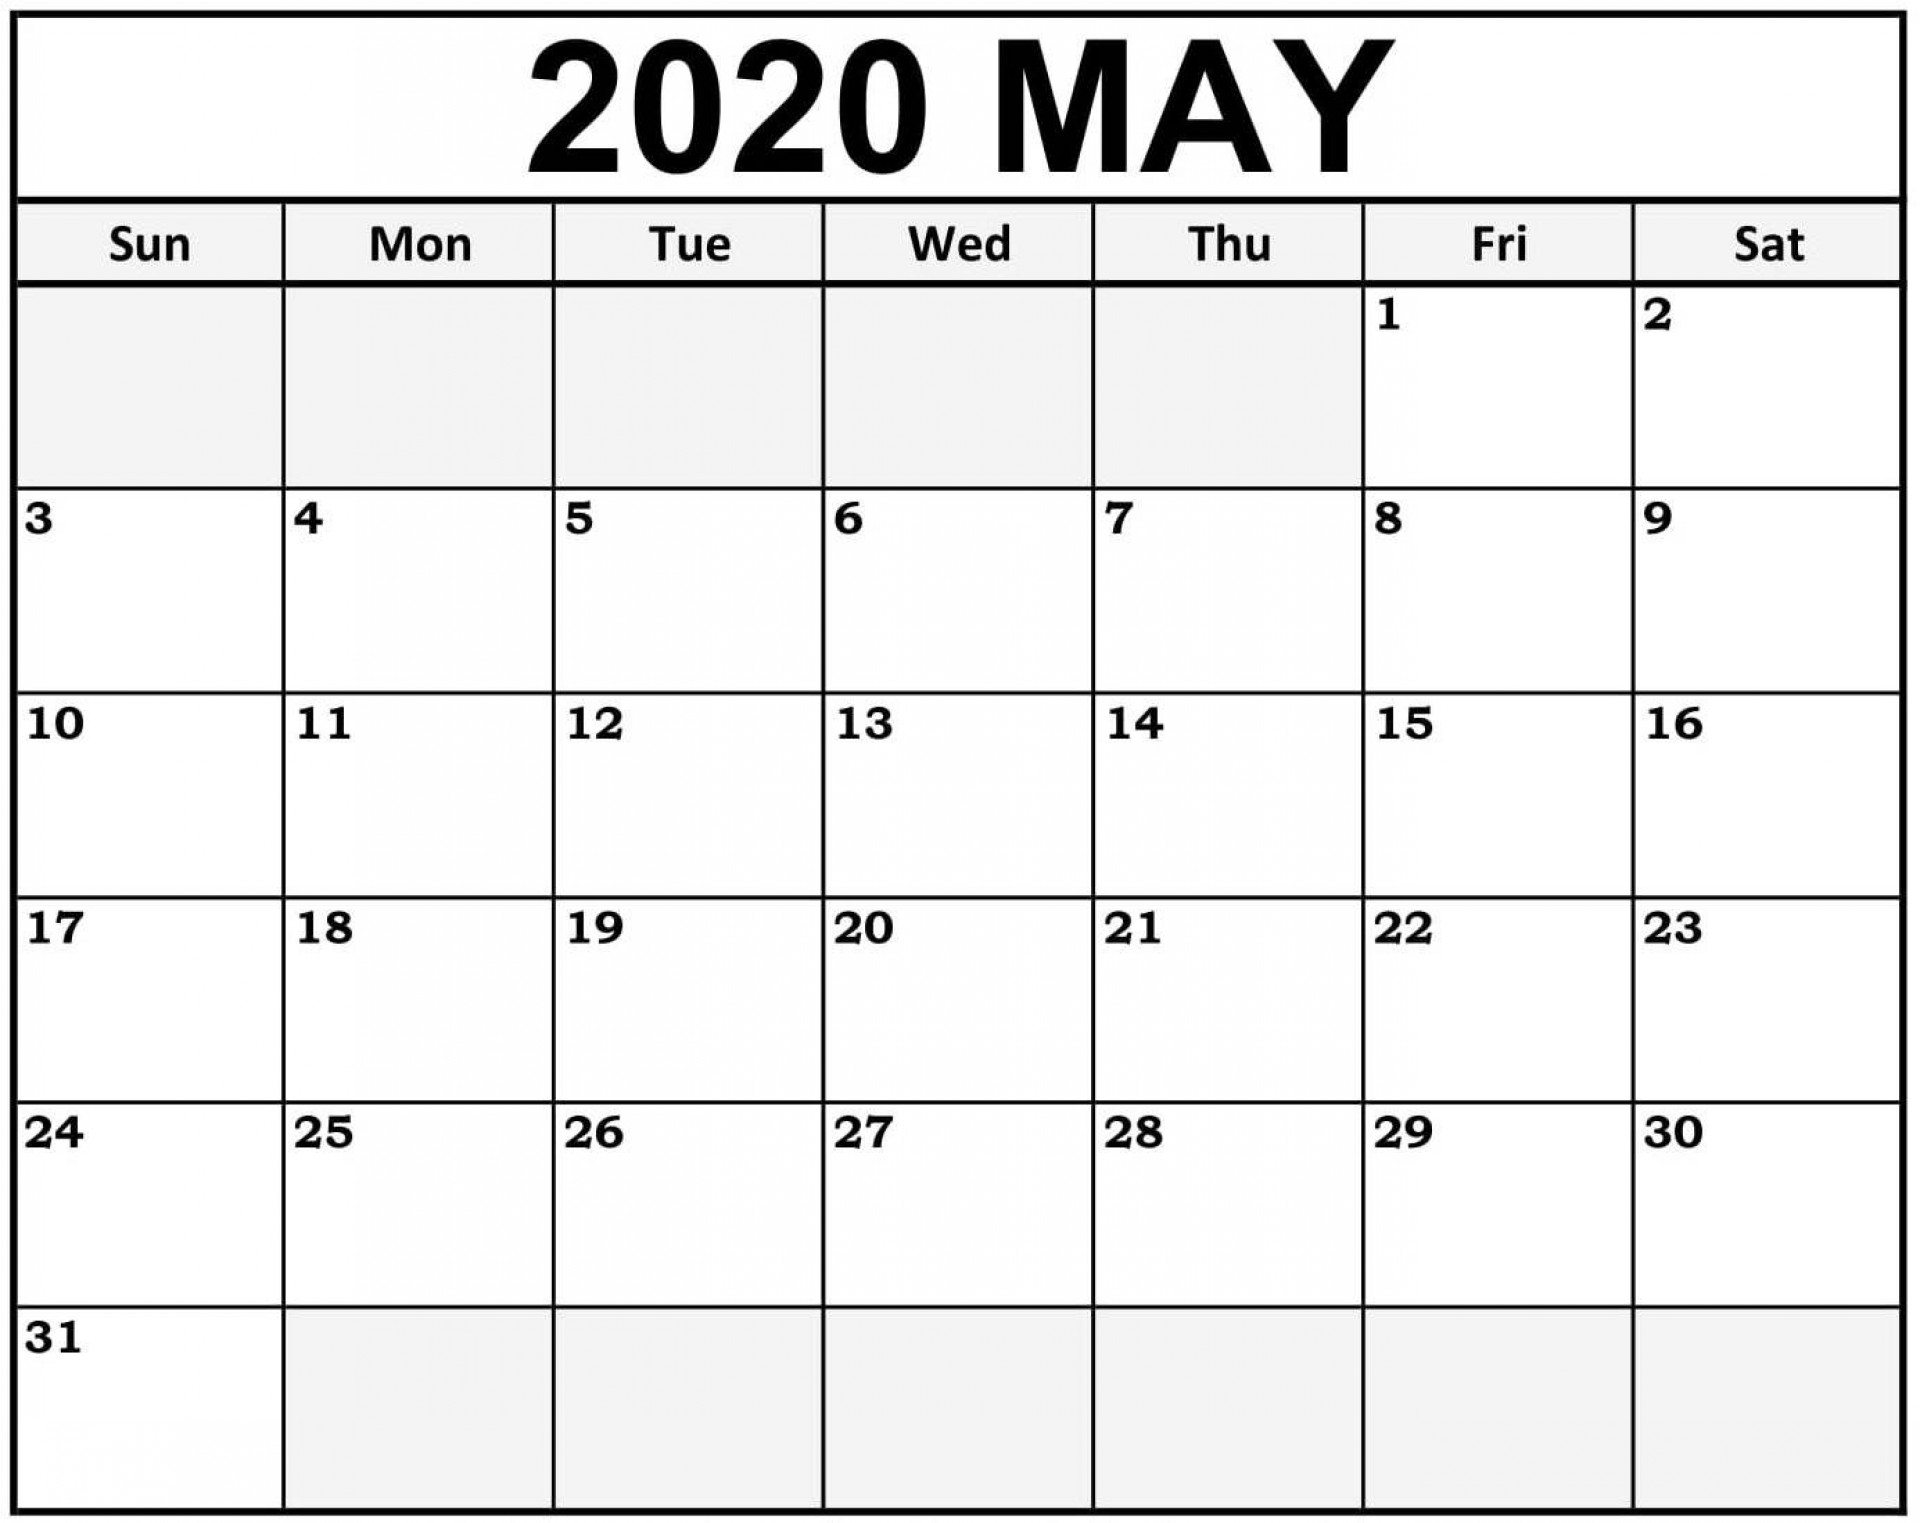 007 Fantastic Calendar Template 2020 Word Photo  April Monthly Microsoft With Holiday February1920